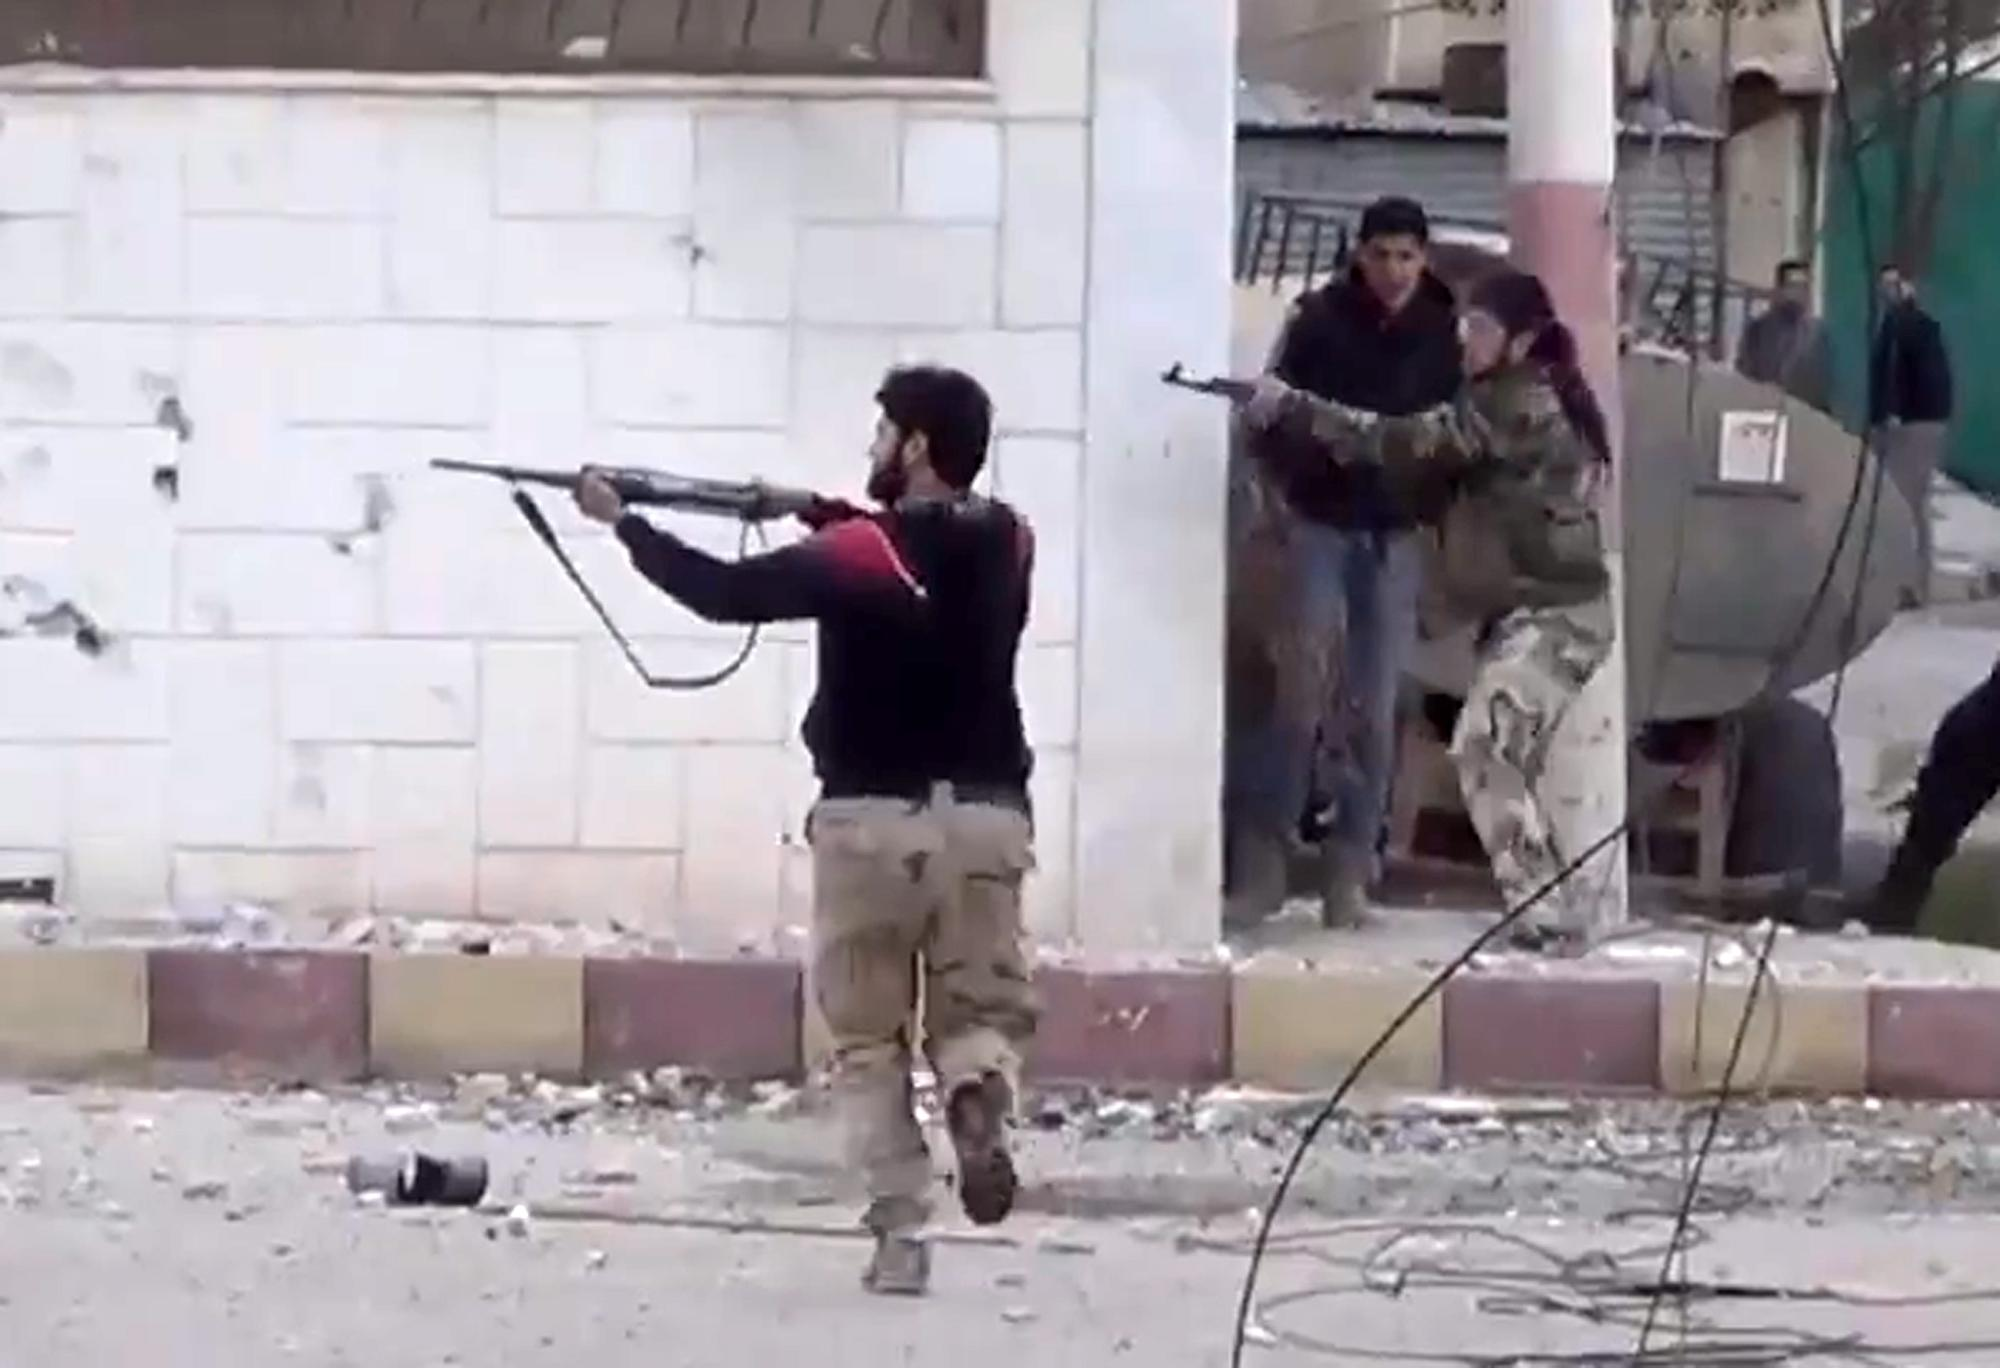 FILE - In this Monday March 18, 2013 file image taken from video obtained from the Shaam News Network, which has been authenticated based on its contents and other AP reporting, shows free Syrian Army fighters fire at Syrian army soldiers during a fierce firefight in Daraa al-Balad, Syria. Syrian rebels captured a military base in the south and may be poised to seize control a strategically important region along the border with Jordan, something that would give them a critical gateway to attempt an attack on the capital Damascus. With foreign aid and training of rebels in Jordan ramping up, the opposition fighters have recaptured momentum and may also soon control Syria's side of the Golan Heights along a sensitive border with Israel. (AP Photo/Shaam News Network via AP video, File)